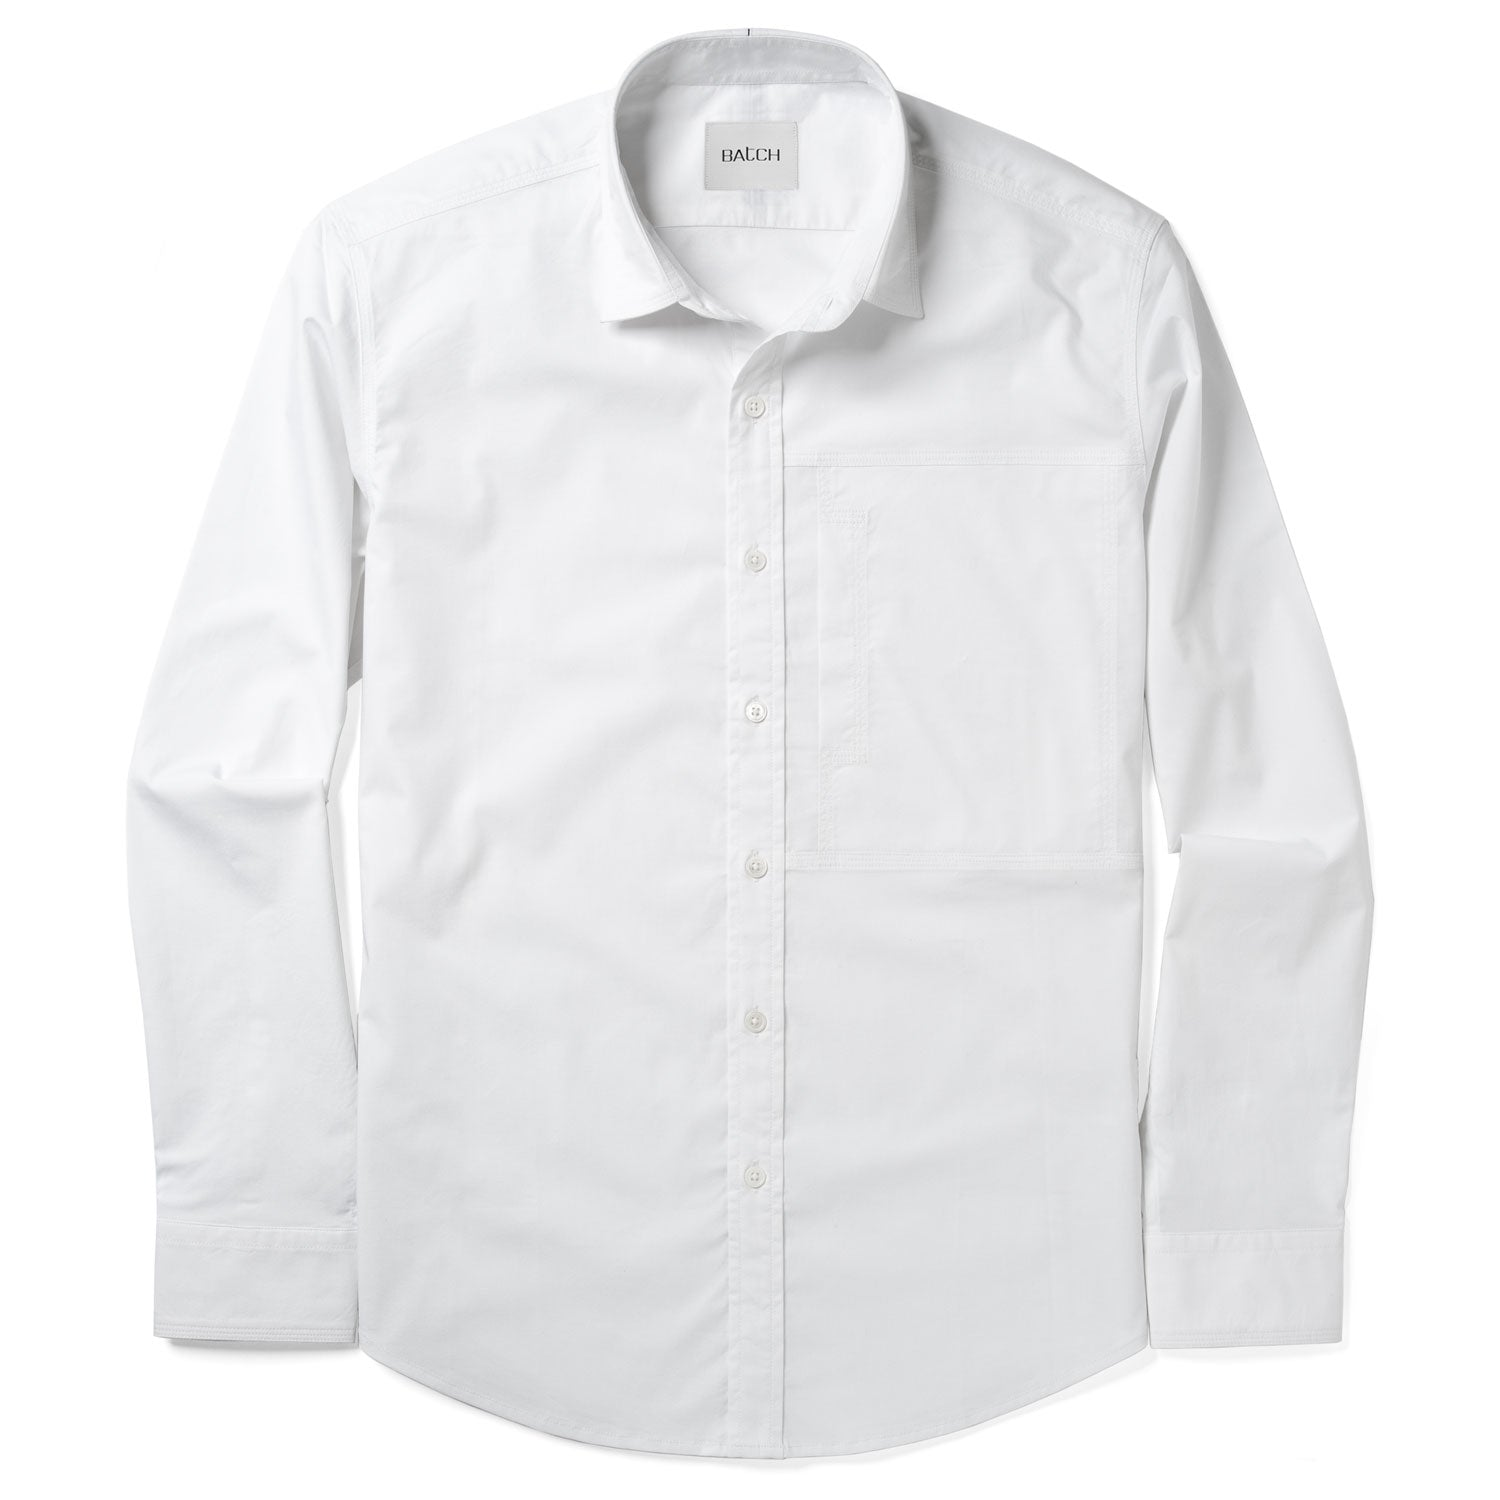 Designer Casual Shirt - Pure White Stretch Poplin